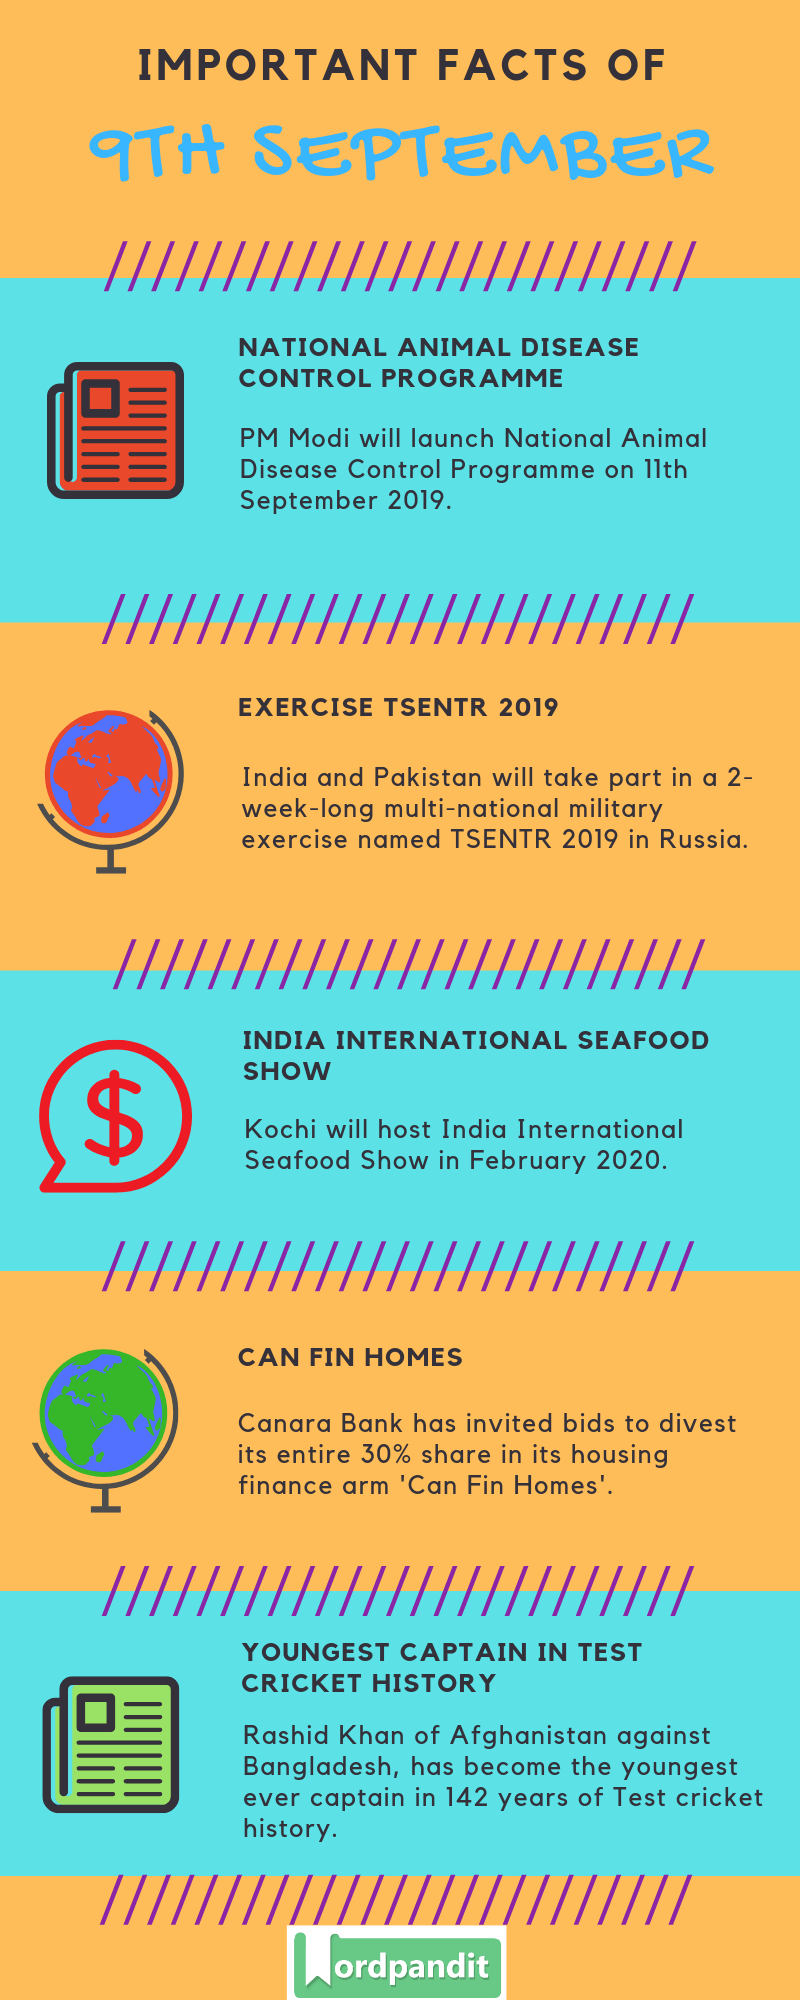 Daily Current Affairs 9 September 2019 Current Affairs Quiz 9 September 2019 Current Affairs Infographic